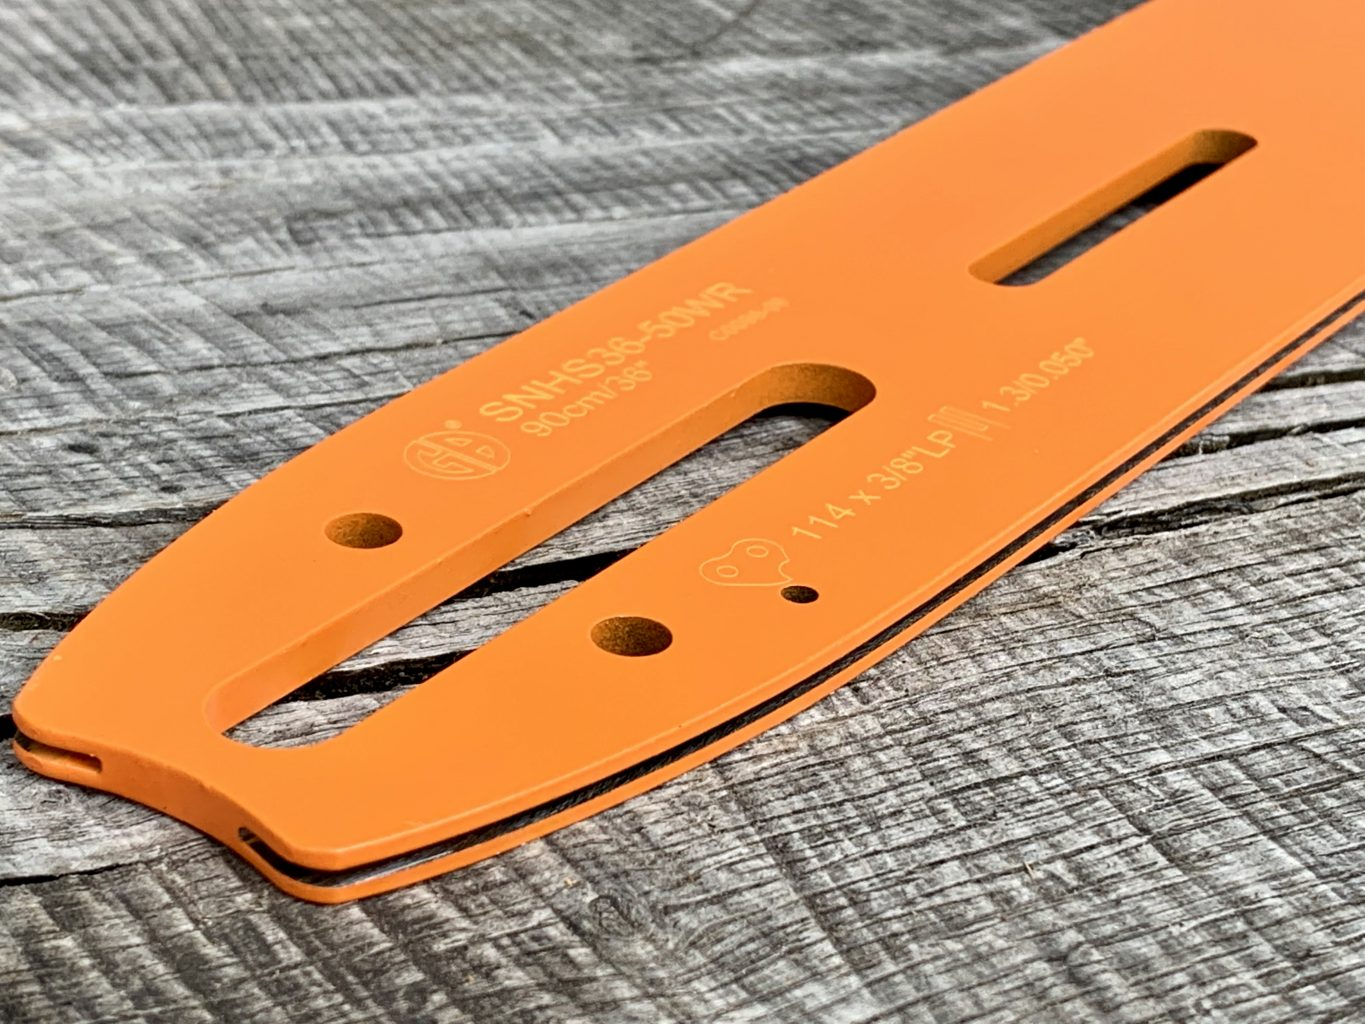 """SNHDS20-50WR 20""""[63cm] GB DOUBLE Slotted Lo Pro Milling Bar For Stihl 044, 045, 046, 048, 064, 065, 066, MS440, MS441, MS460, MS461, MS650, MS660, MS661 3/8 Lo Pro .050 72 drive links"""